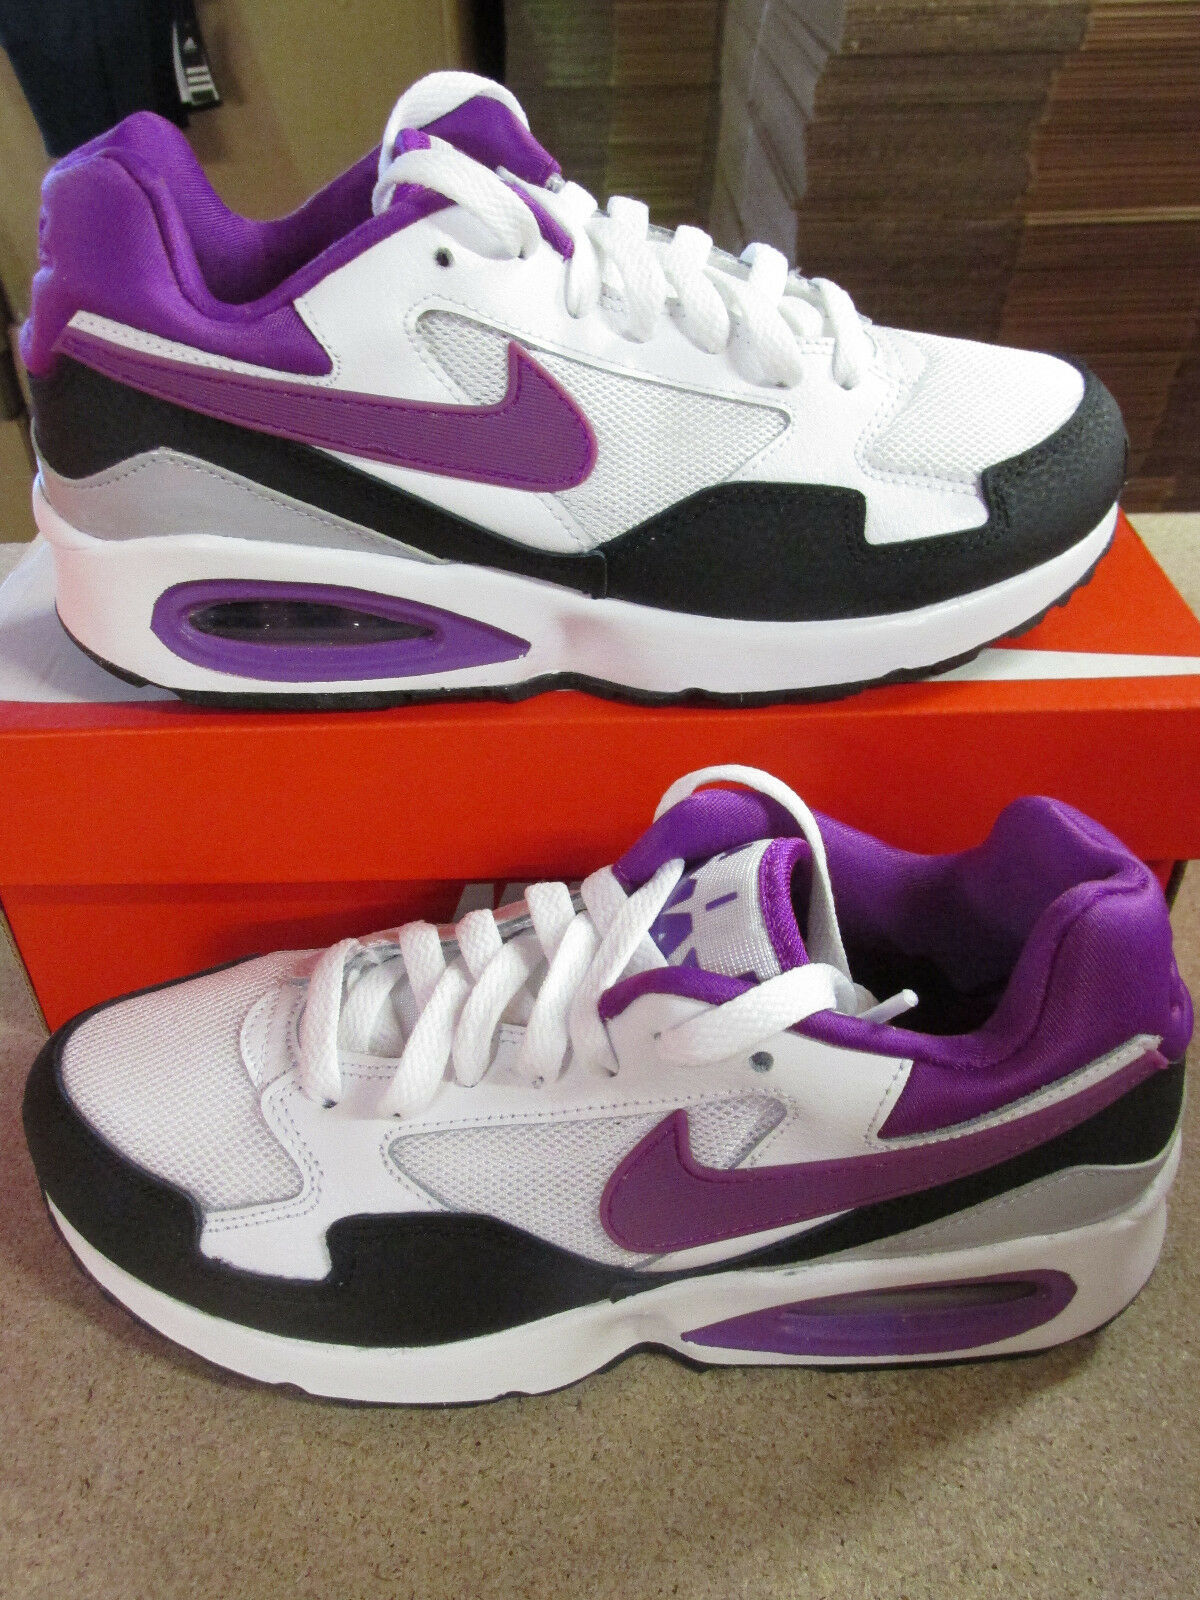 Nike Femmes Air Max St Basket Course 705003 104 Baskets